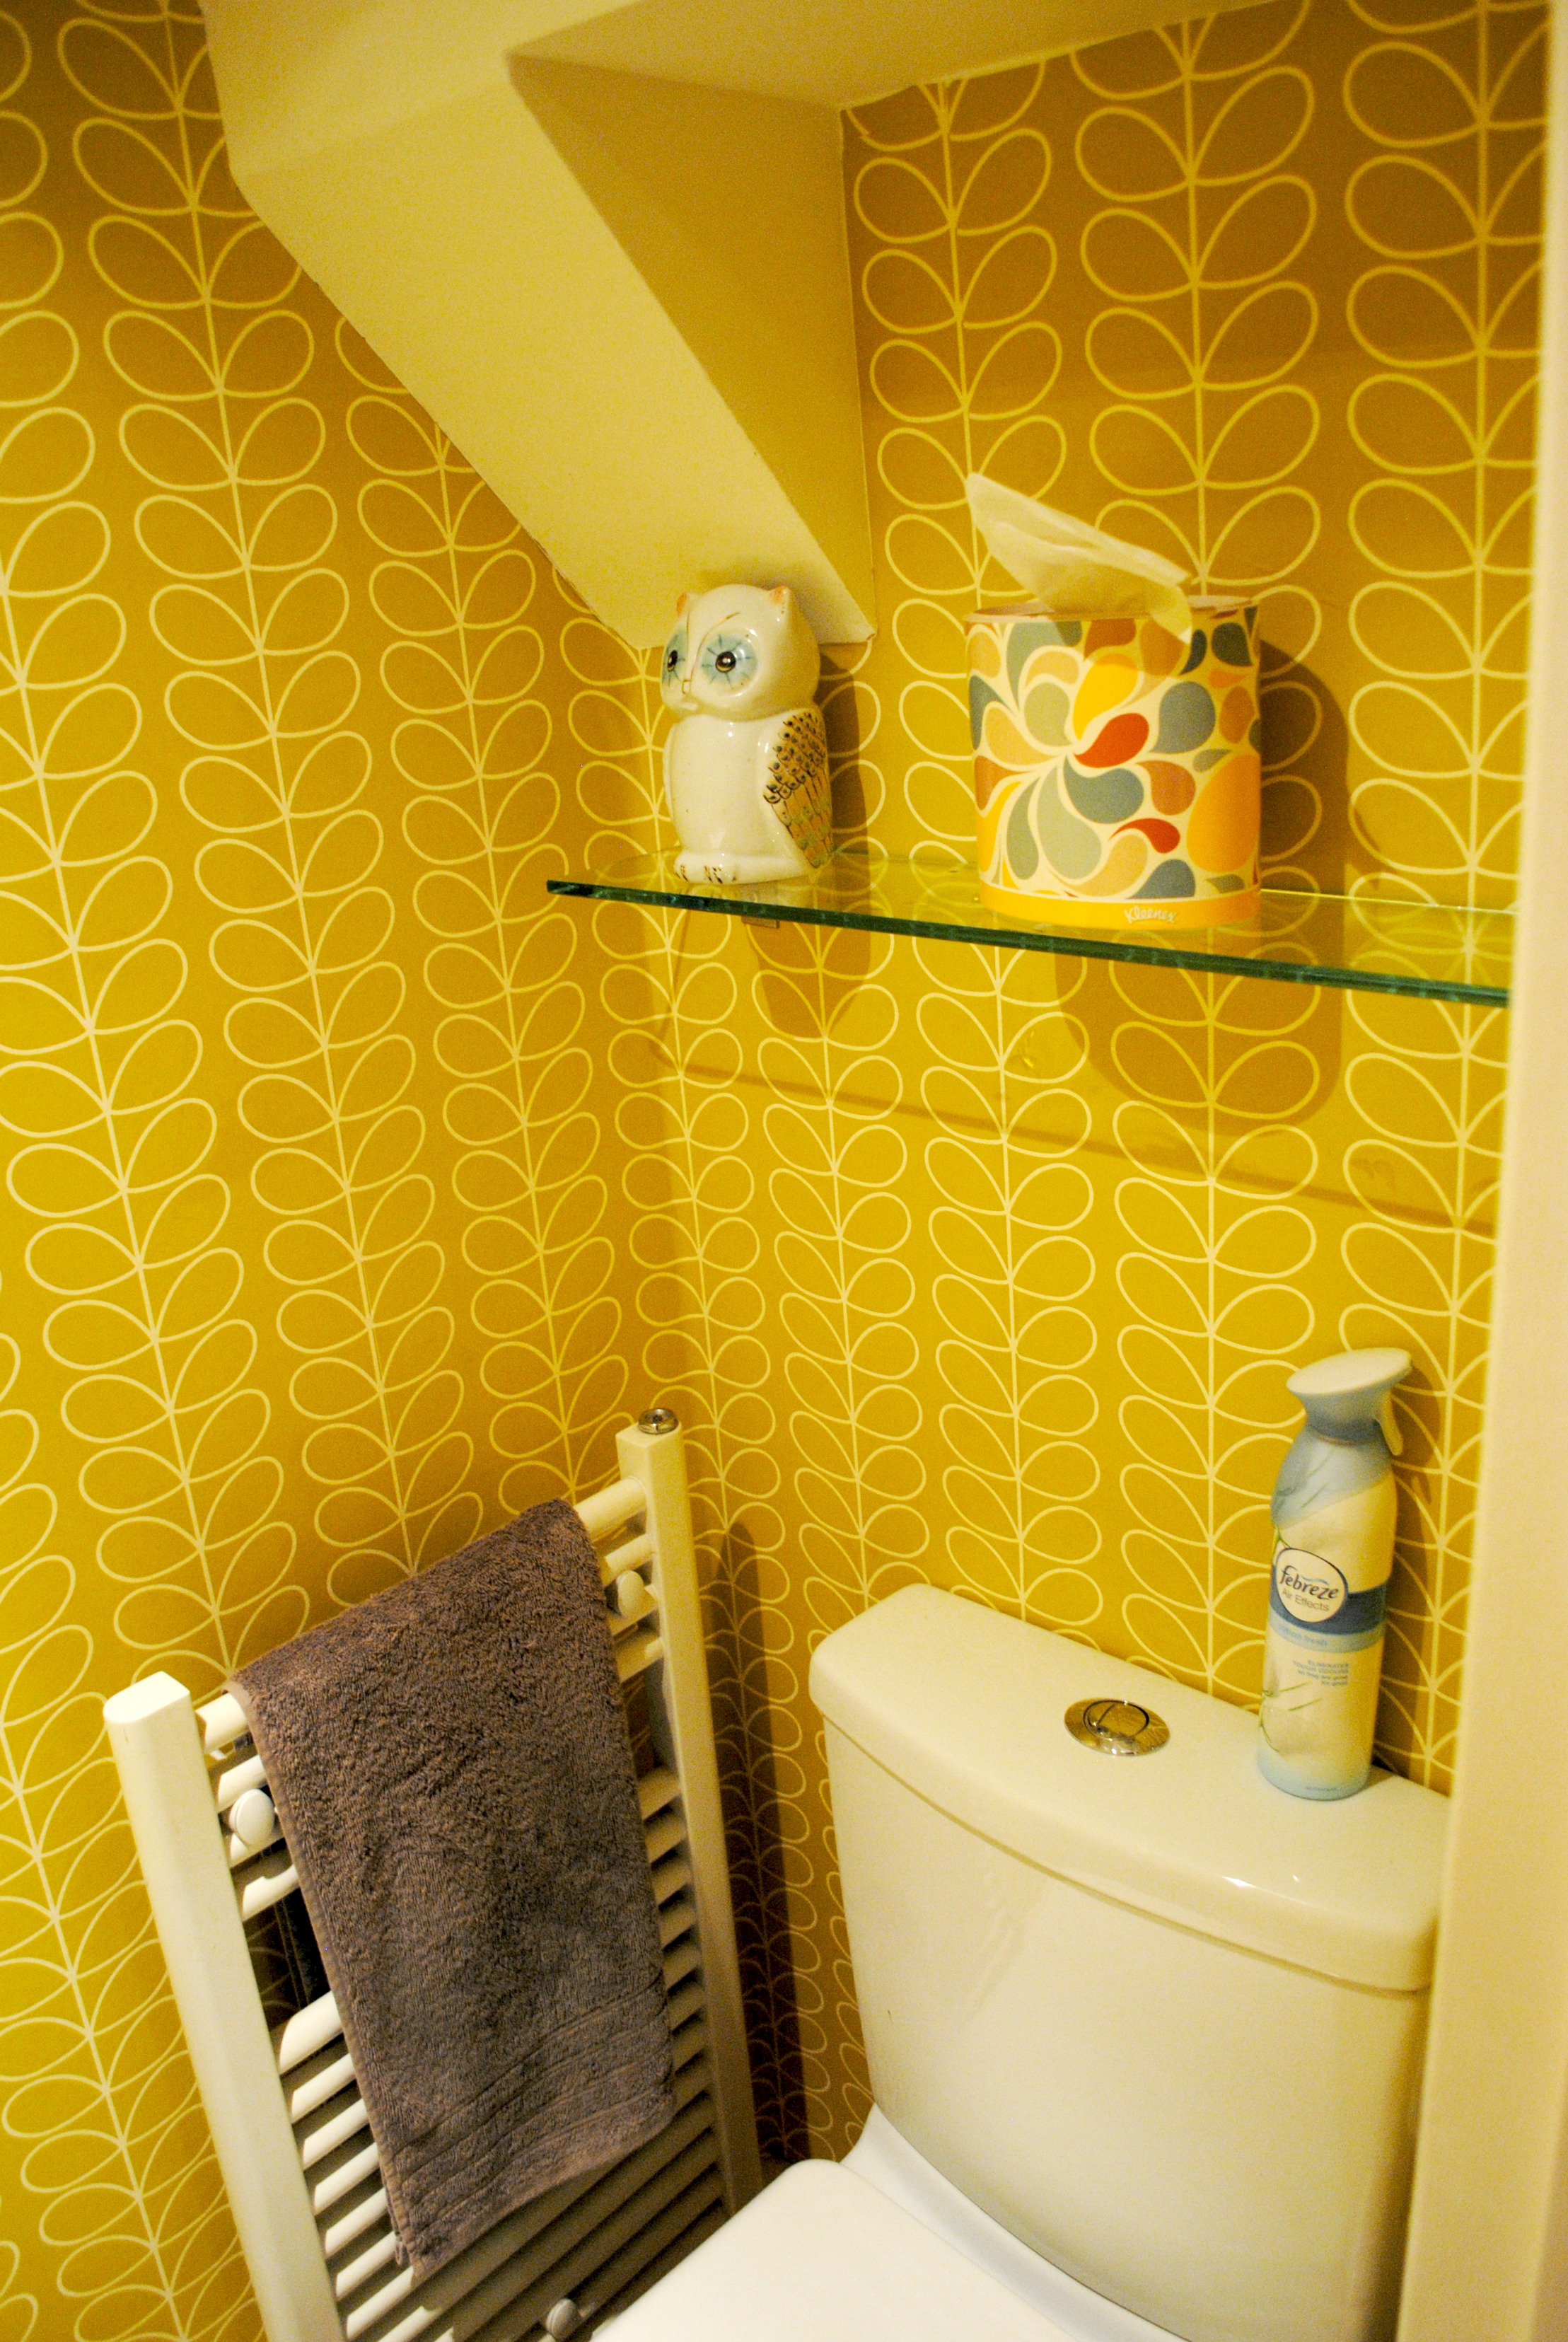 Orla kiely linear stem wallpaper - Enter Orla Kiely We Chose Her Wallpaper Linear Stem In Yellow To Perk Up Our Toilet At 52 A Roll It S Not Cheap But For Such A Small Space We Only